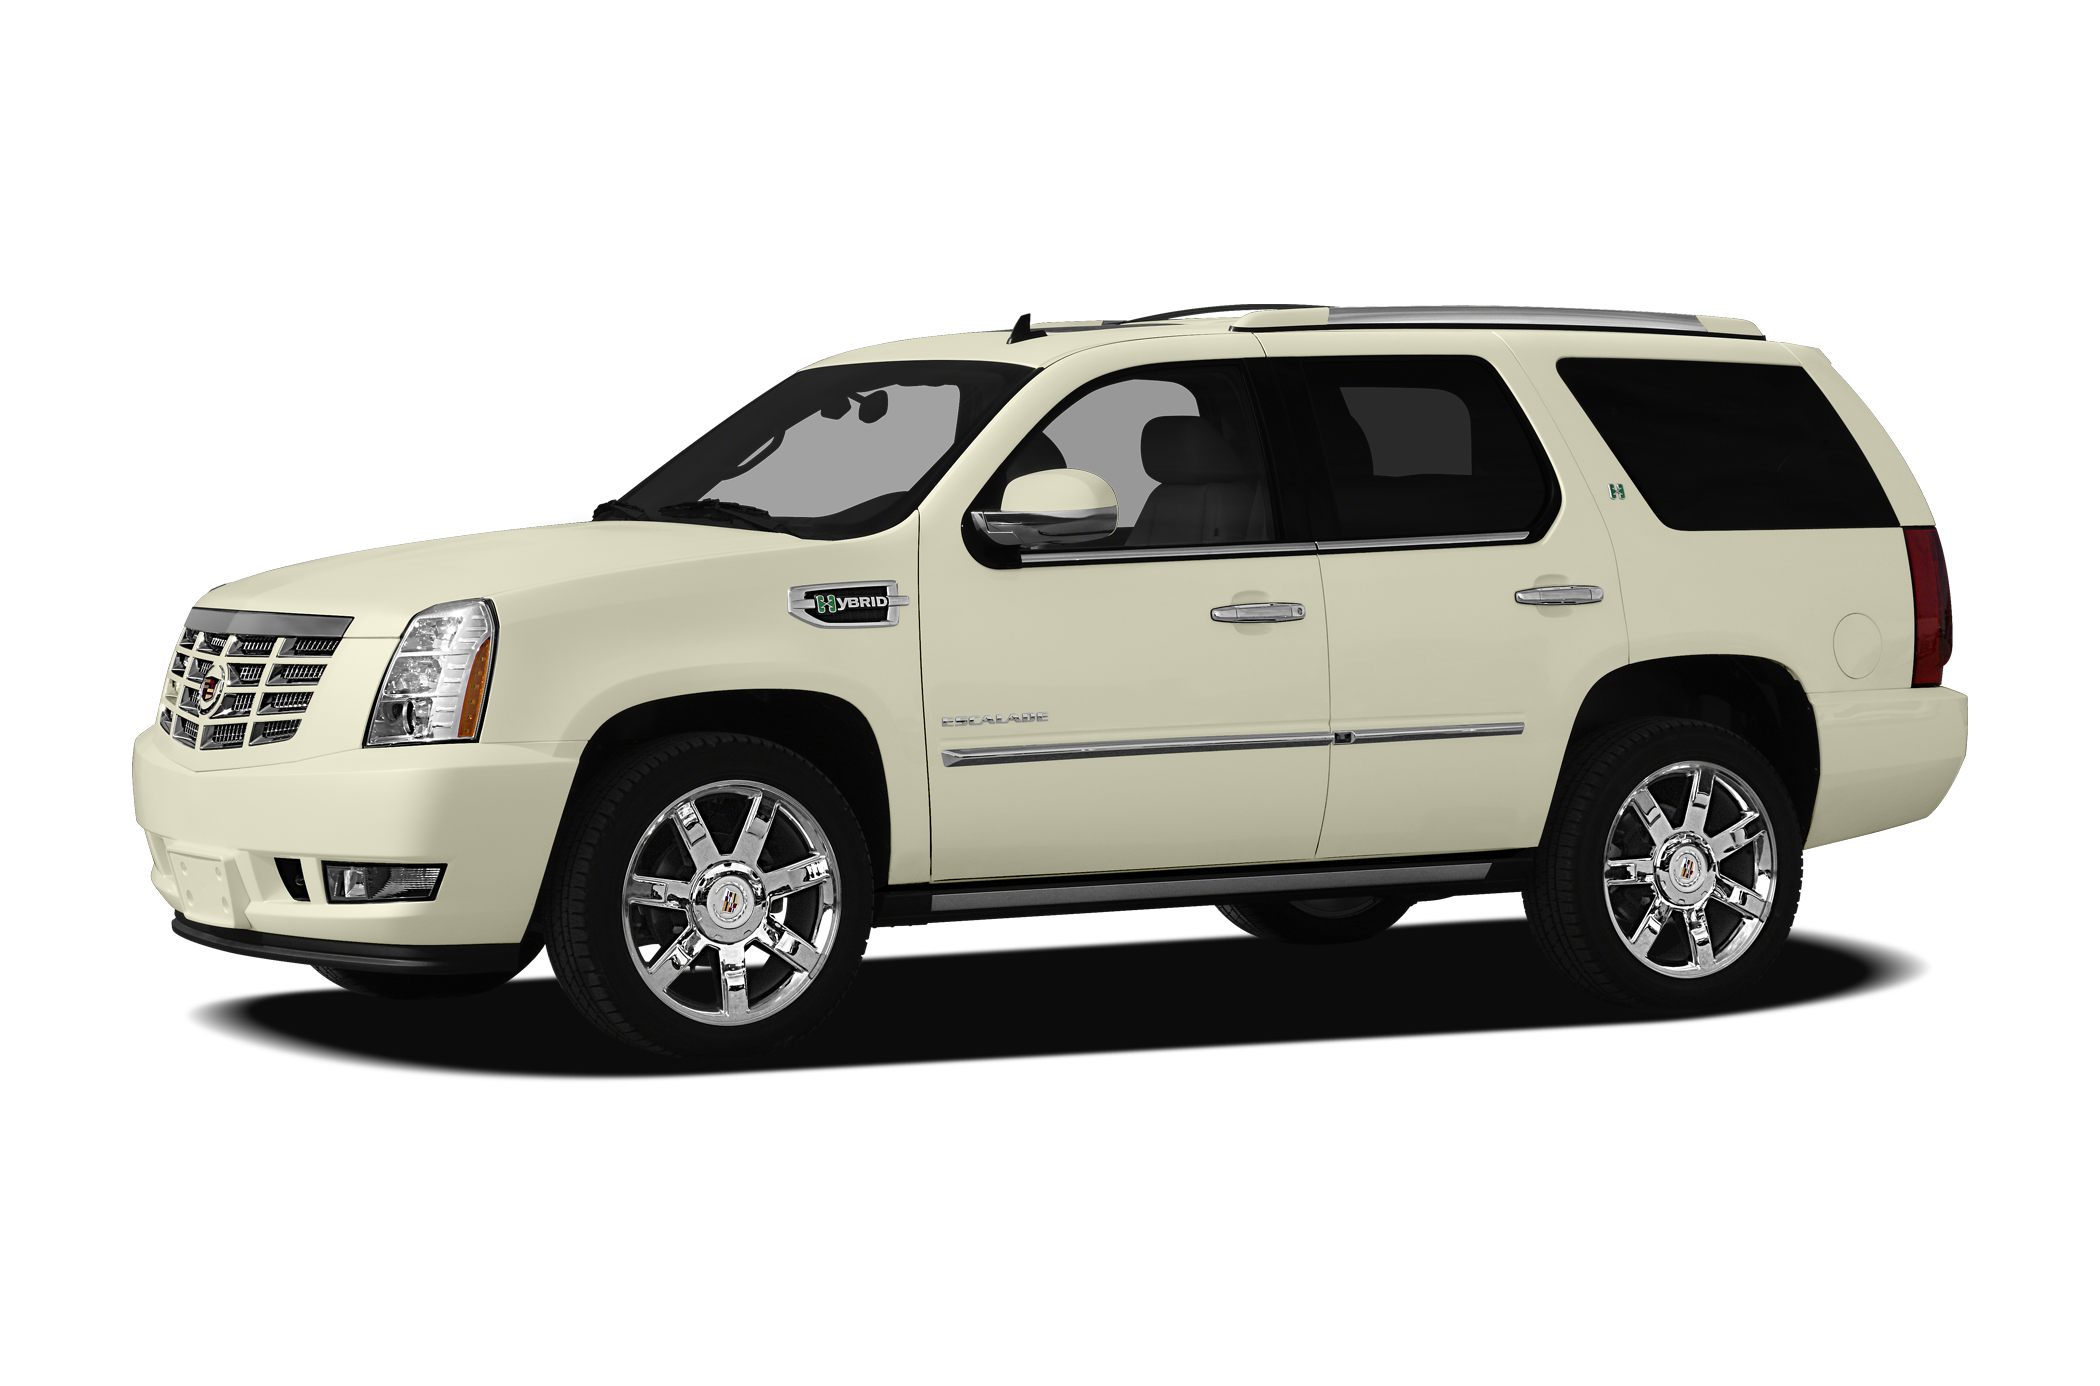 cadillac the suv and ft lauderdale escalade picture of luxury orlando rent price esv miami in